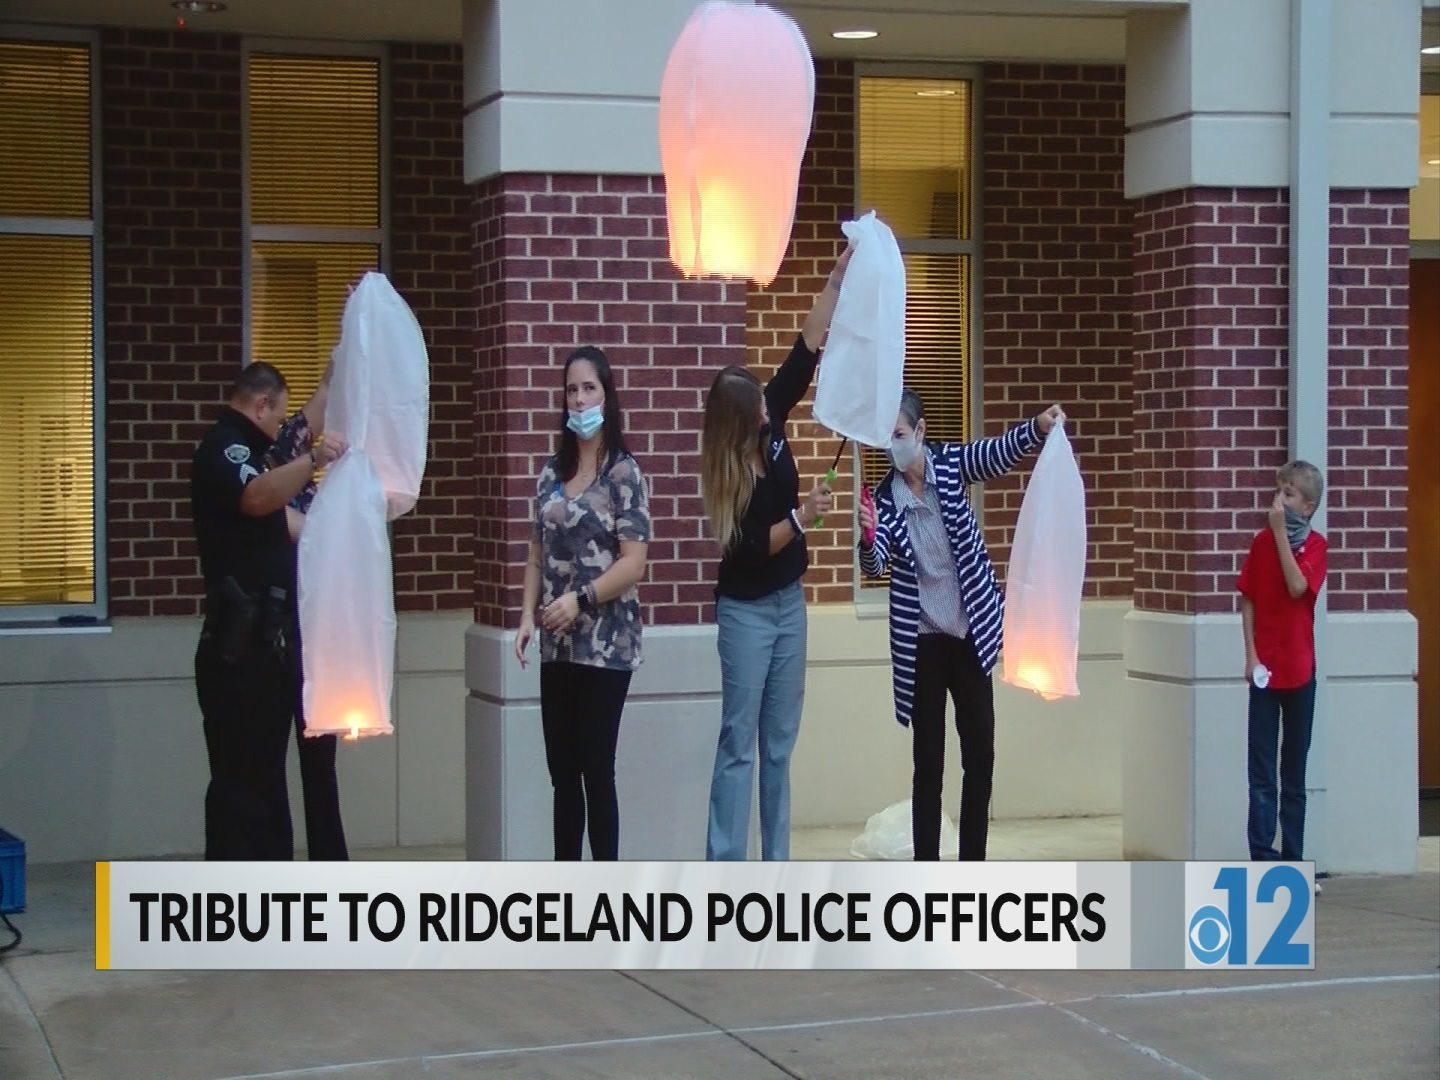 Ridgeland Police Department